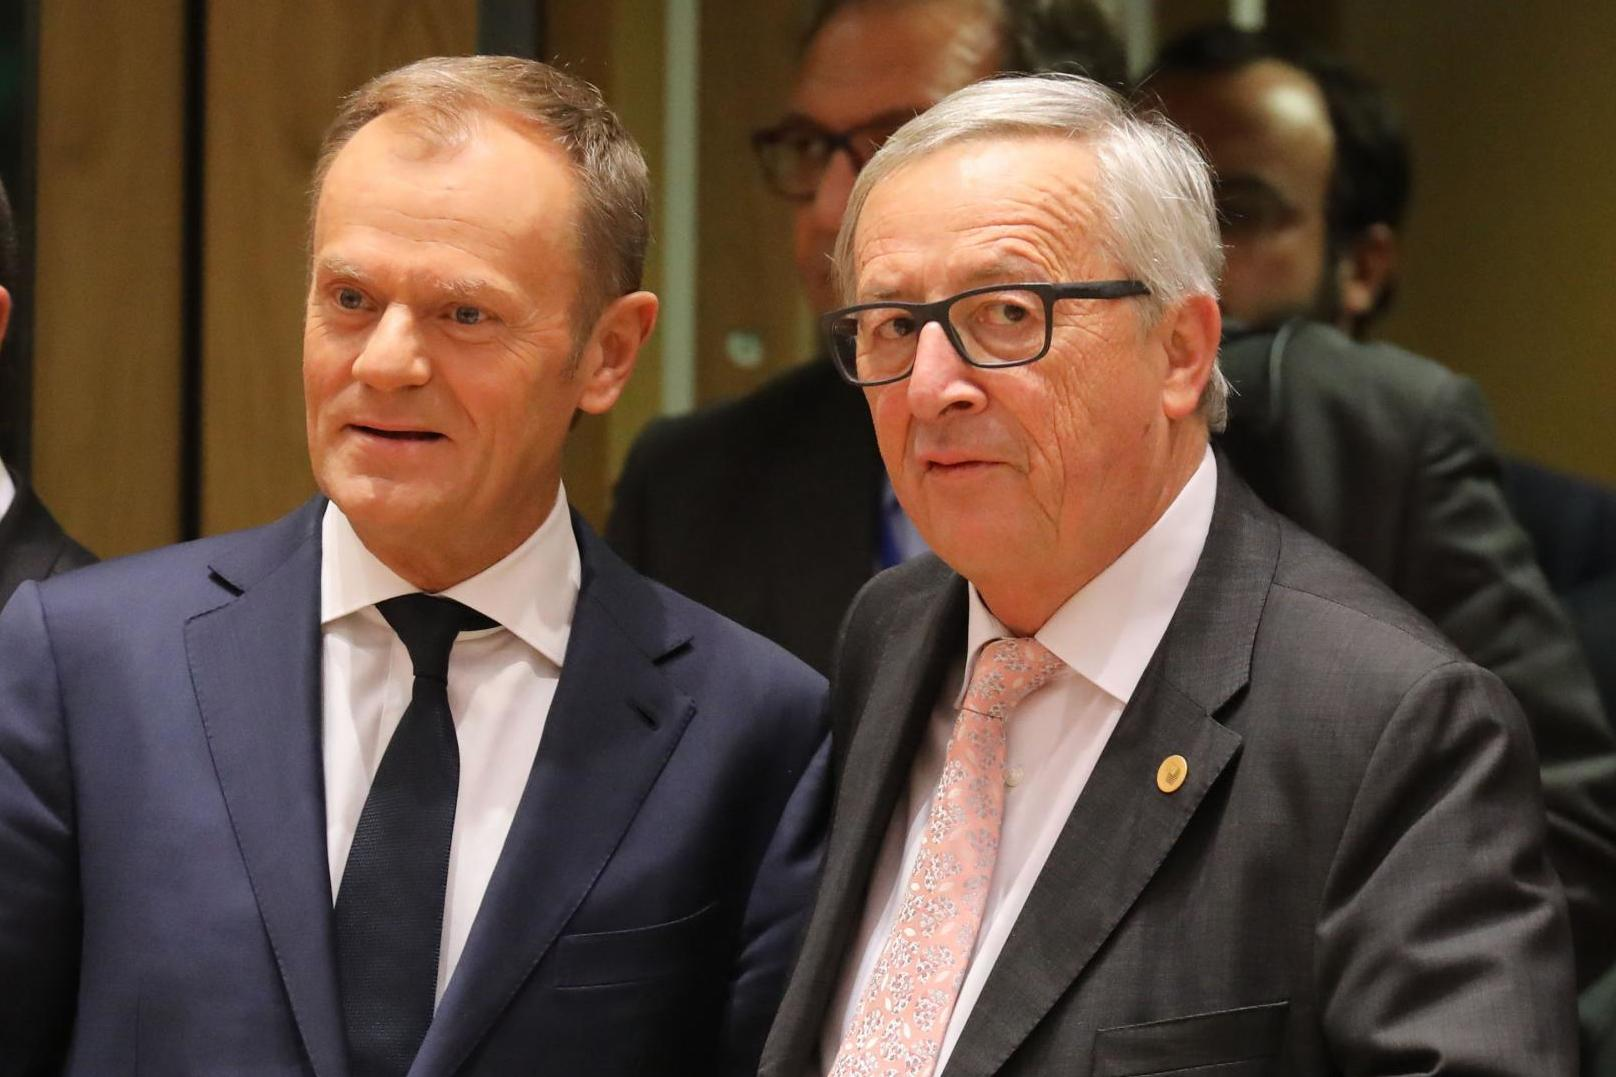 EU leaders sense our change of heart on Brexit - and now they're trying to woo us back